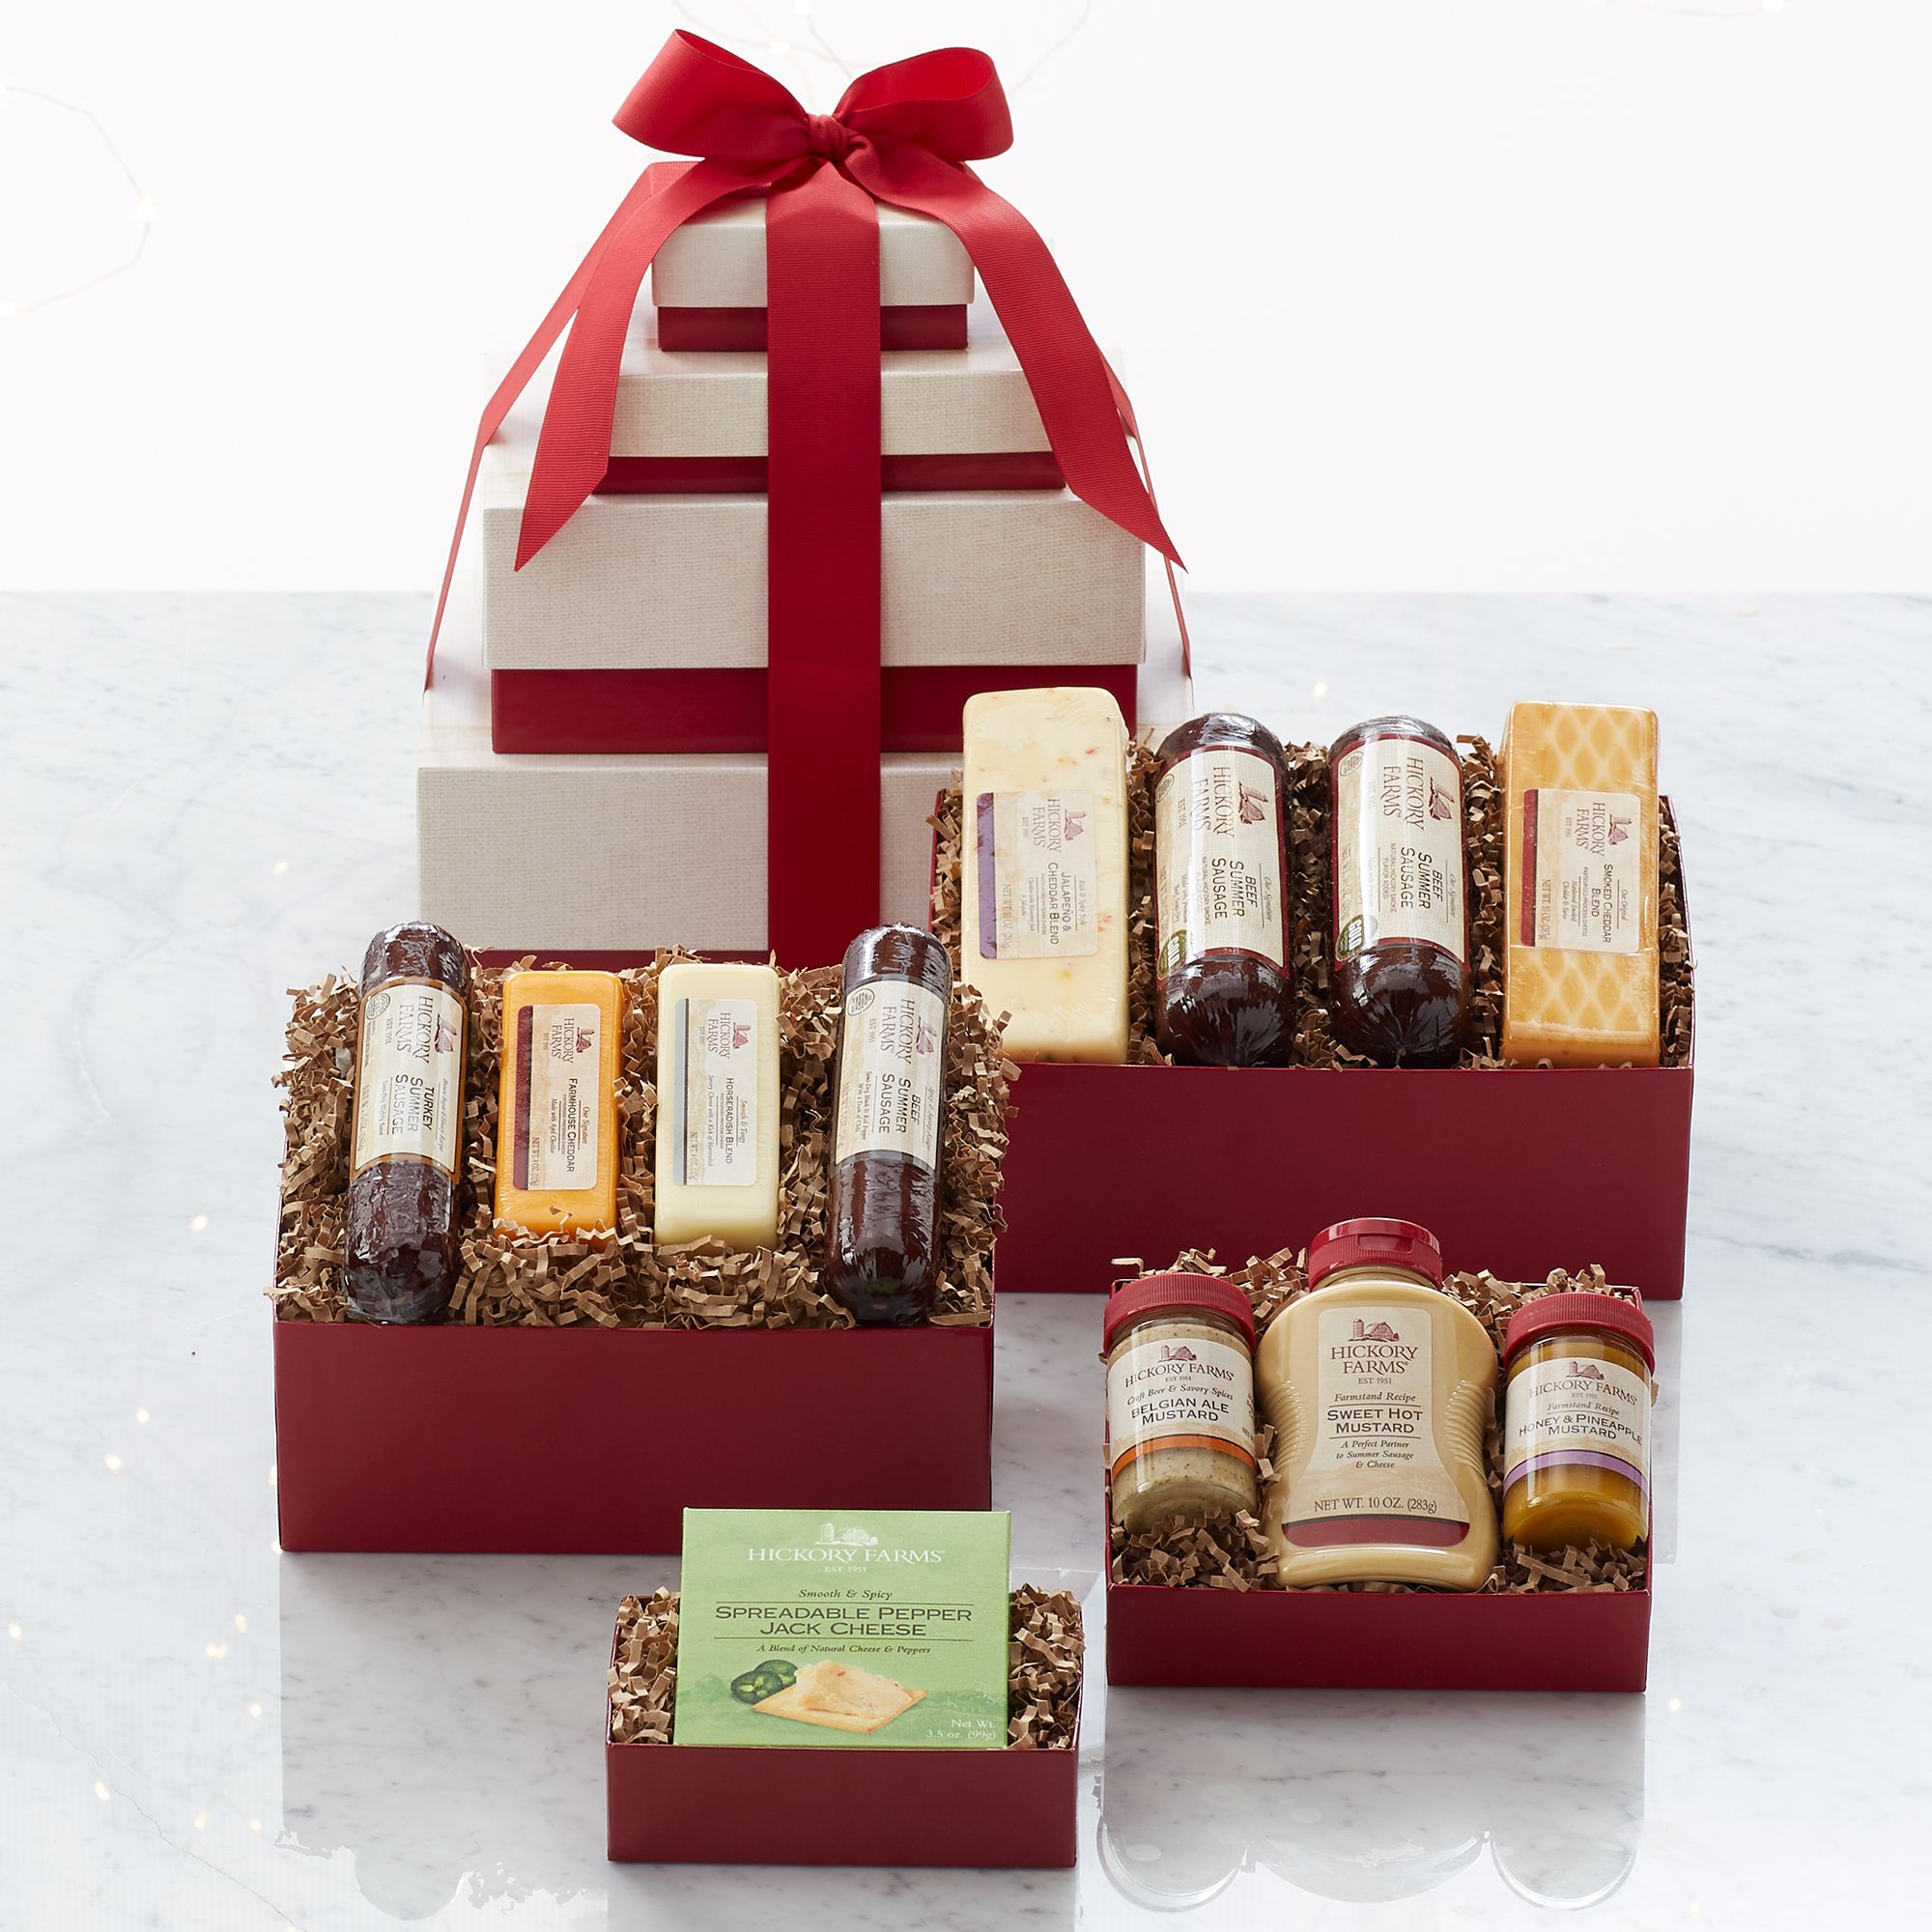 new product gift guide - Hickory Farms Gourmet Meat & Cheese Tower